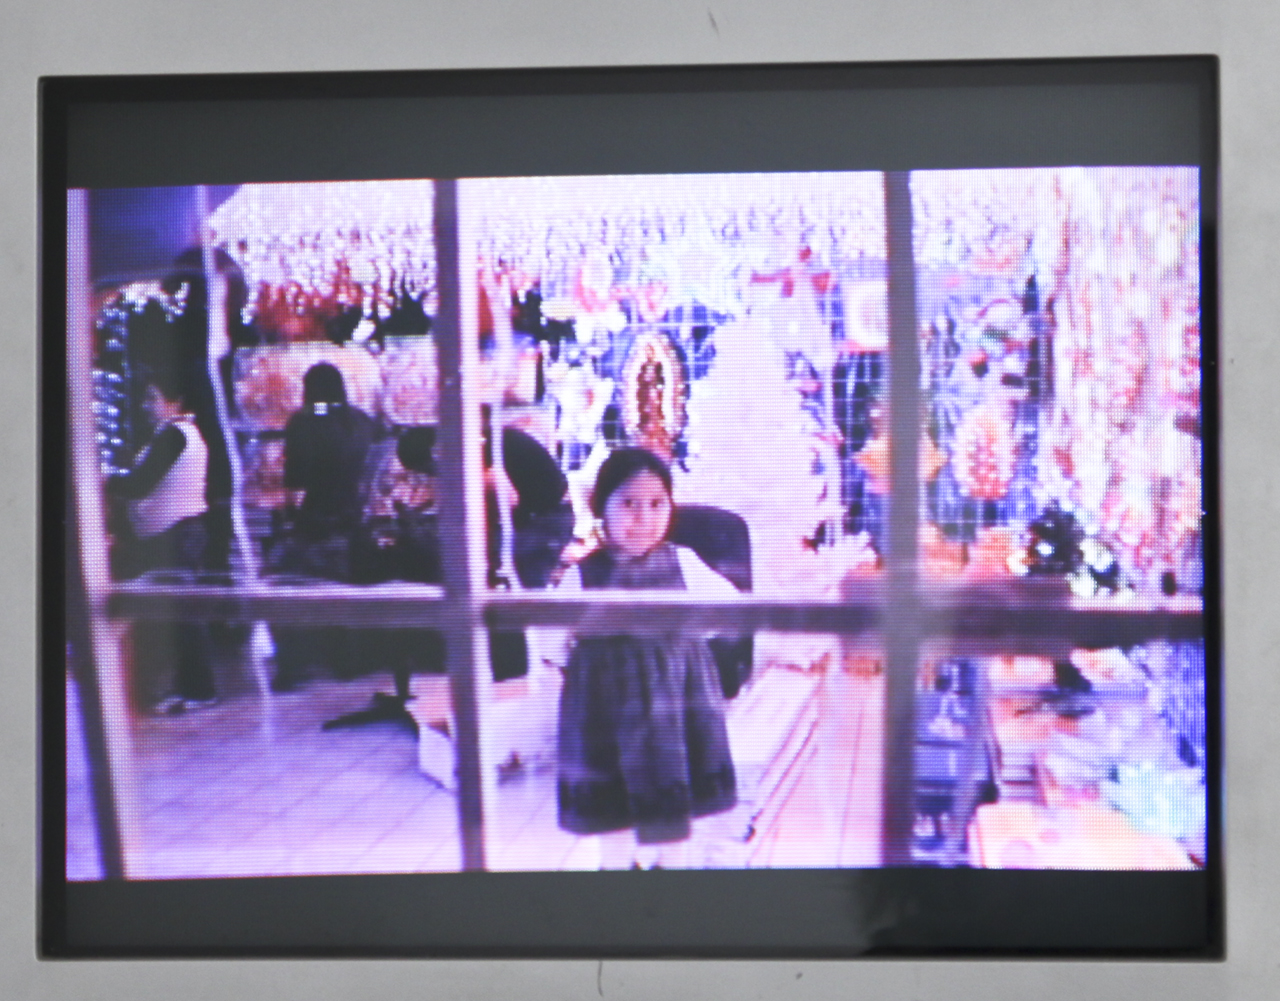 """Rubén García Marrufo's   i hated here   (2016), video, 27 minutes,from the exhibition  """"Replacing Place,""""  curated by MK Guth, currently on view at Anytime Dept. in Cincinnati, OH"""